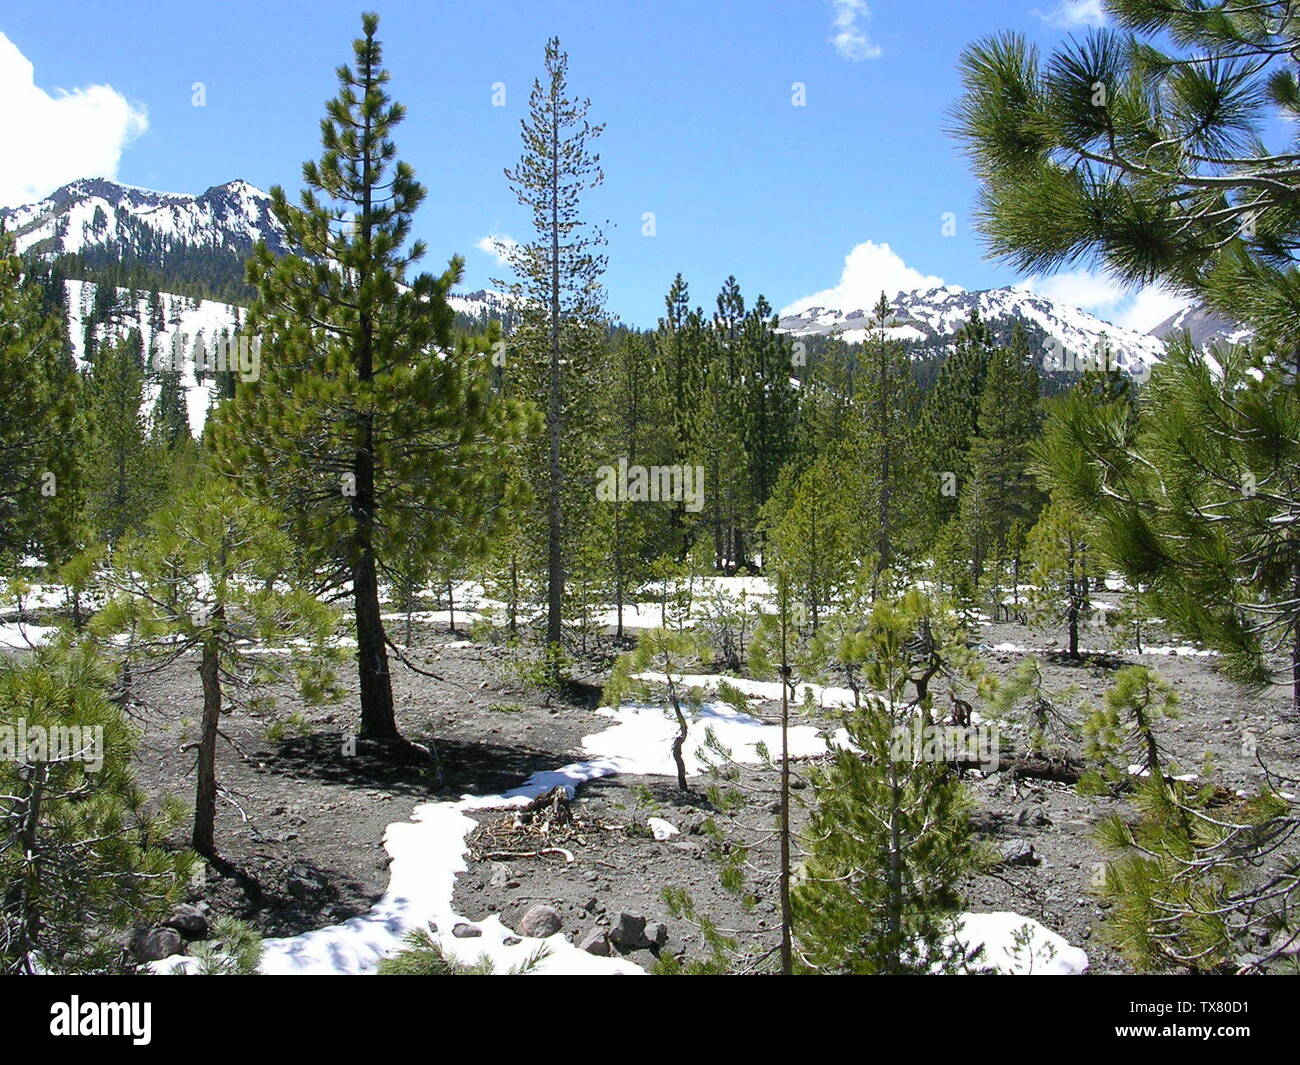 'English: Lassen National Park.  The Devastated Area, looking west. The peaks are probably Crescent Crater on the left, Chaos Crags on the right. Mixed conifer forest with Pinus jeffreyi (long needles) and Pinus monticola (short needles). Русский: Национальный парк Lassen, в США.  Вид с востока на район Devastated Area (пораженное место).  Вершины вероятно Crescent Crater слева, Chaos Crags справа.; 22 May 2005; Own work; Smack (talk); ' - Stock Image